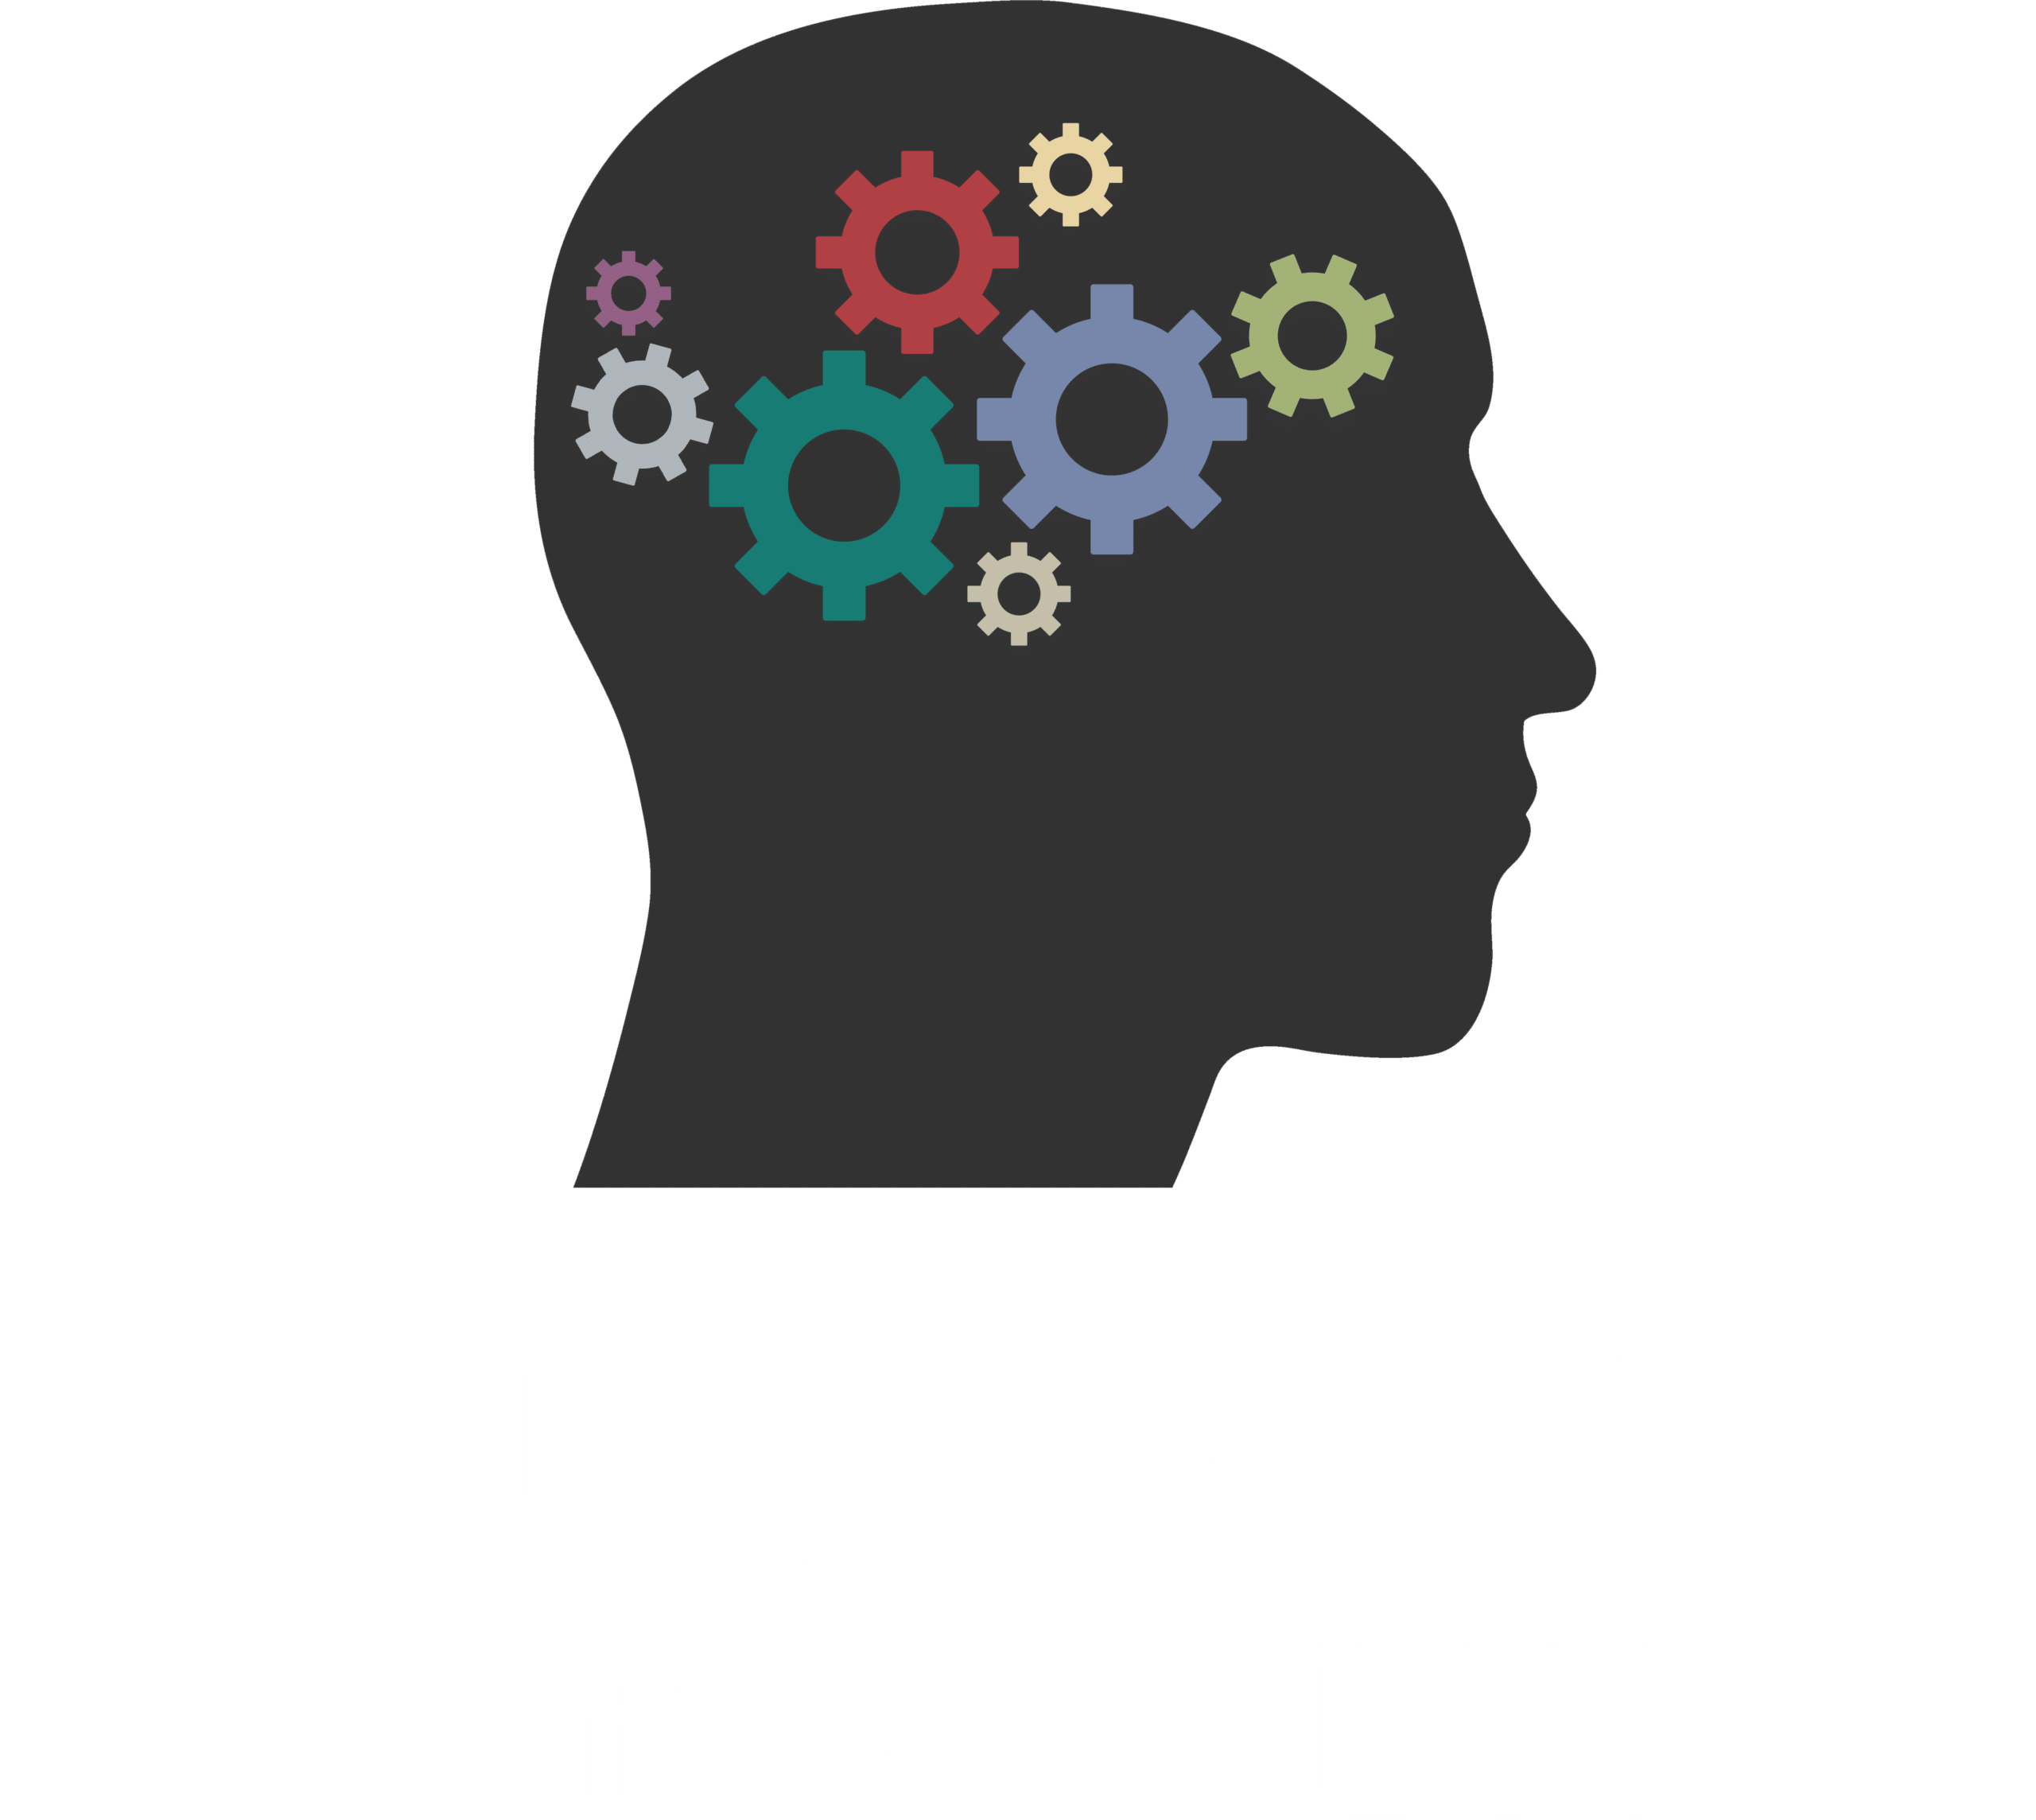 JMI Psychological Services Logo